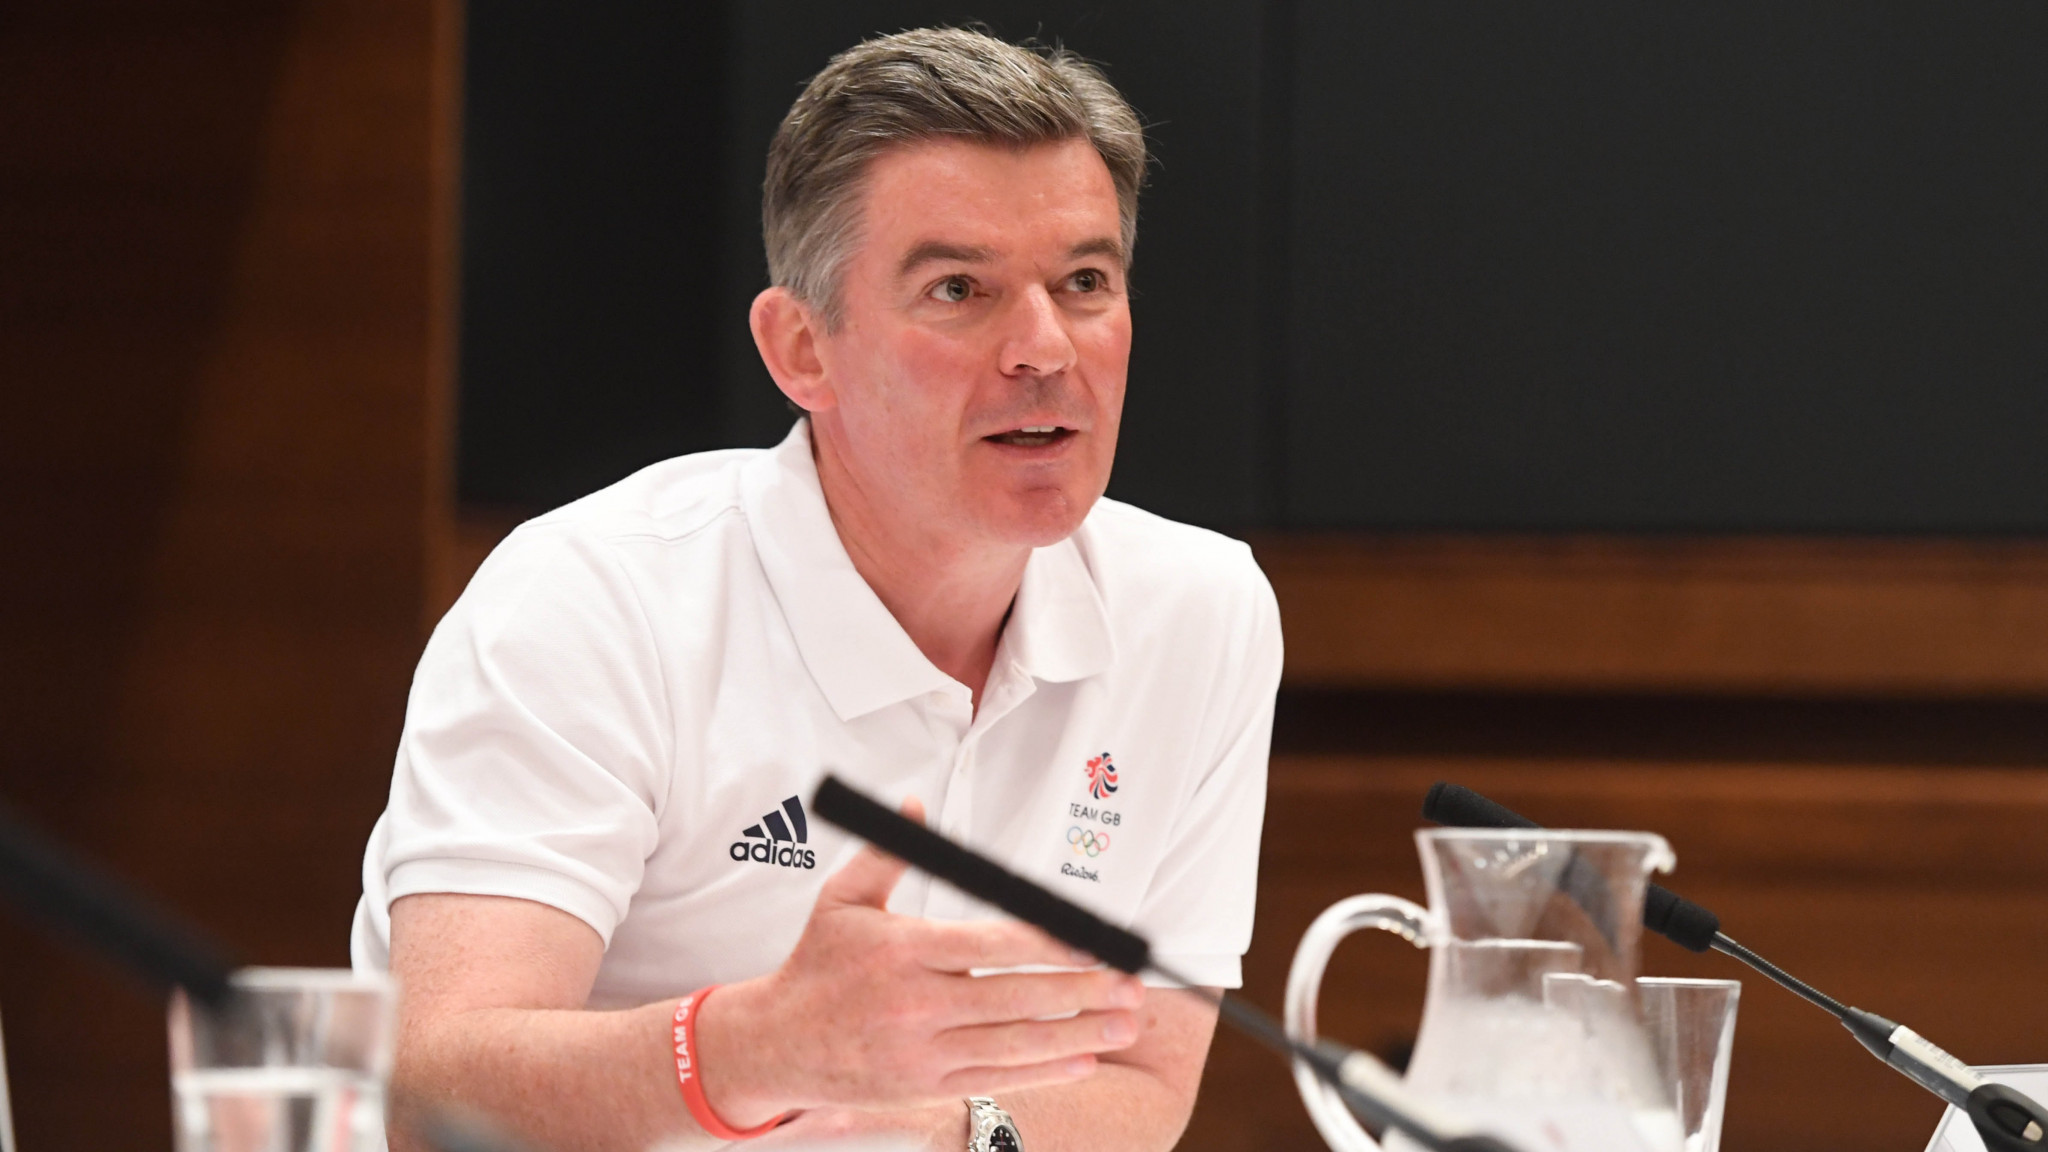 BOA chairman seeks to reassure Tokyo 2020 that Team GB will present no risk to Japan